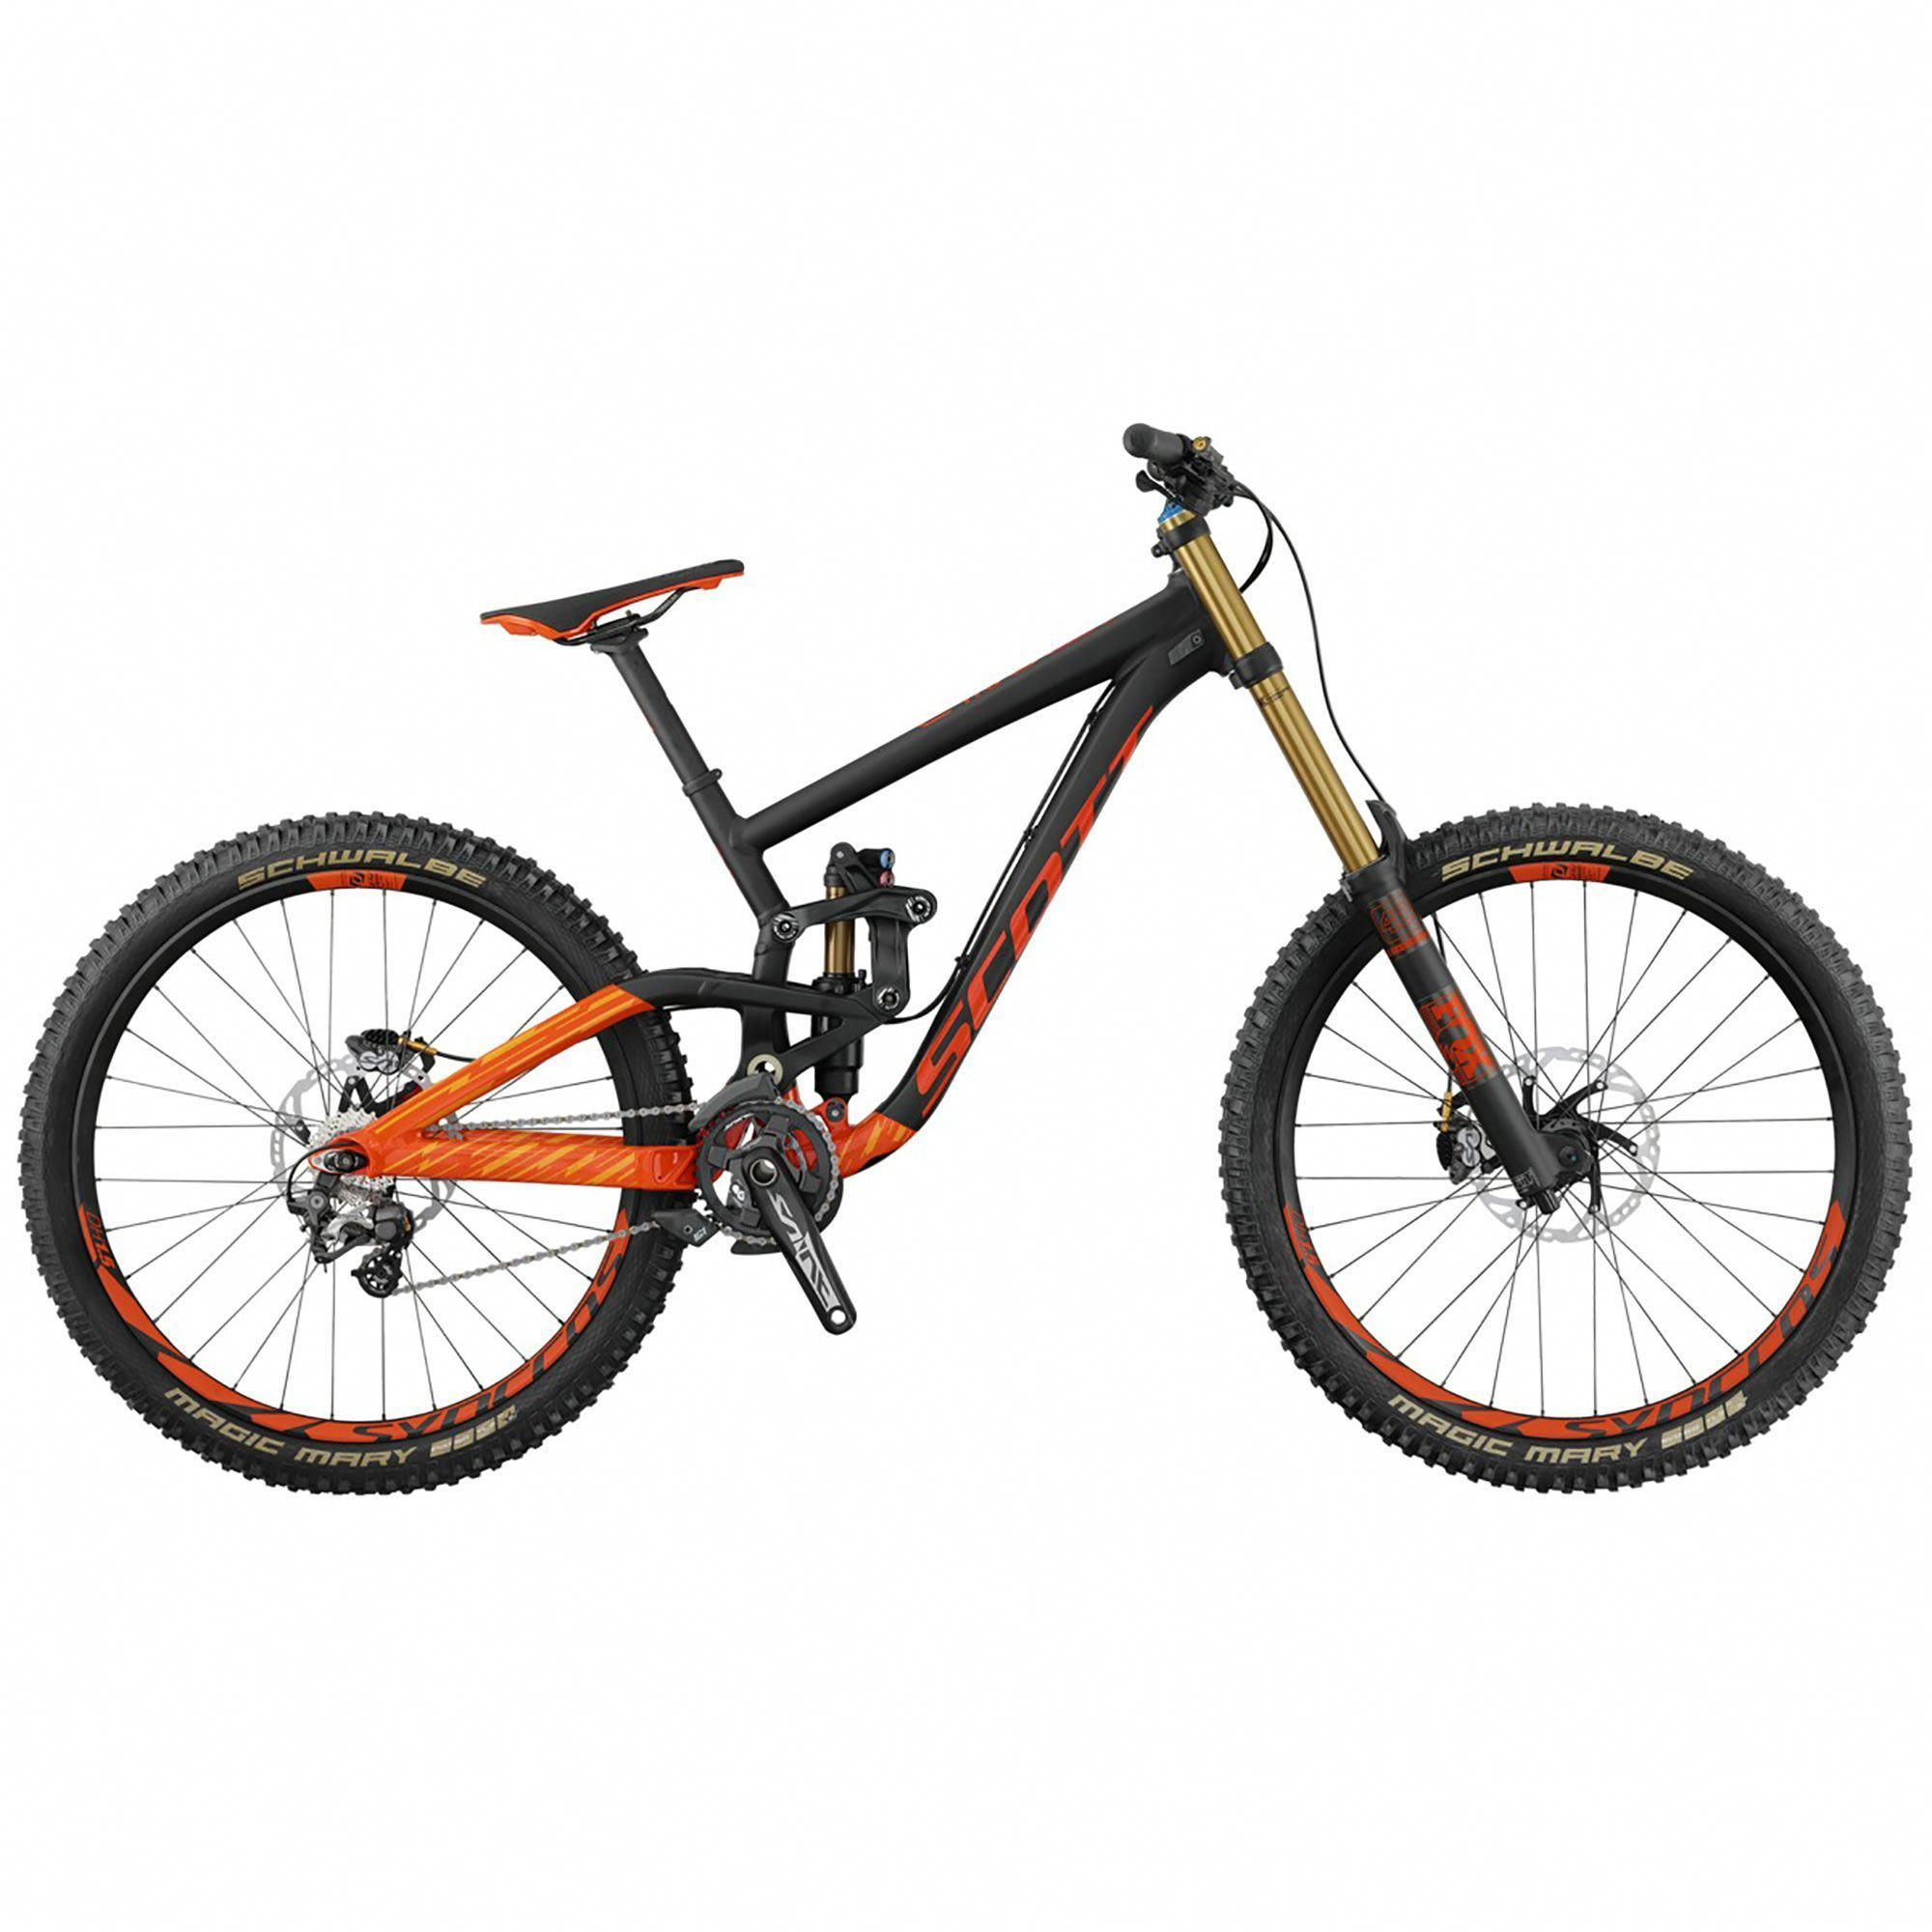 Scott Gambler 710 Full Suspension Mountain Bike - 27.5 Inch - 2017 Medium - 17 Inch  #CyclingBargain...